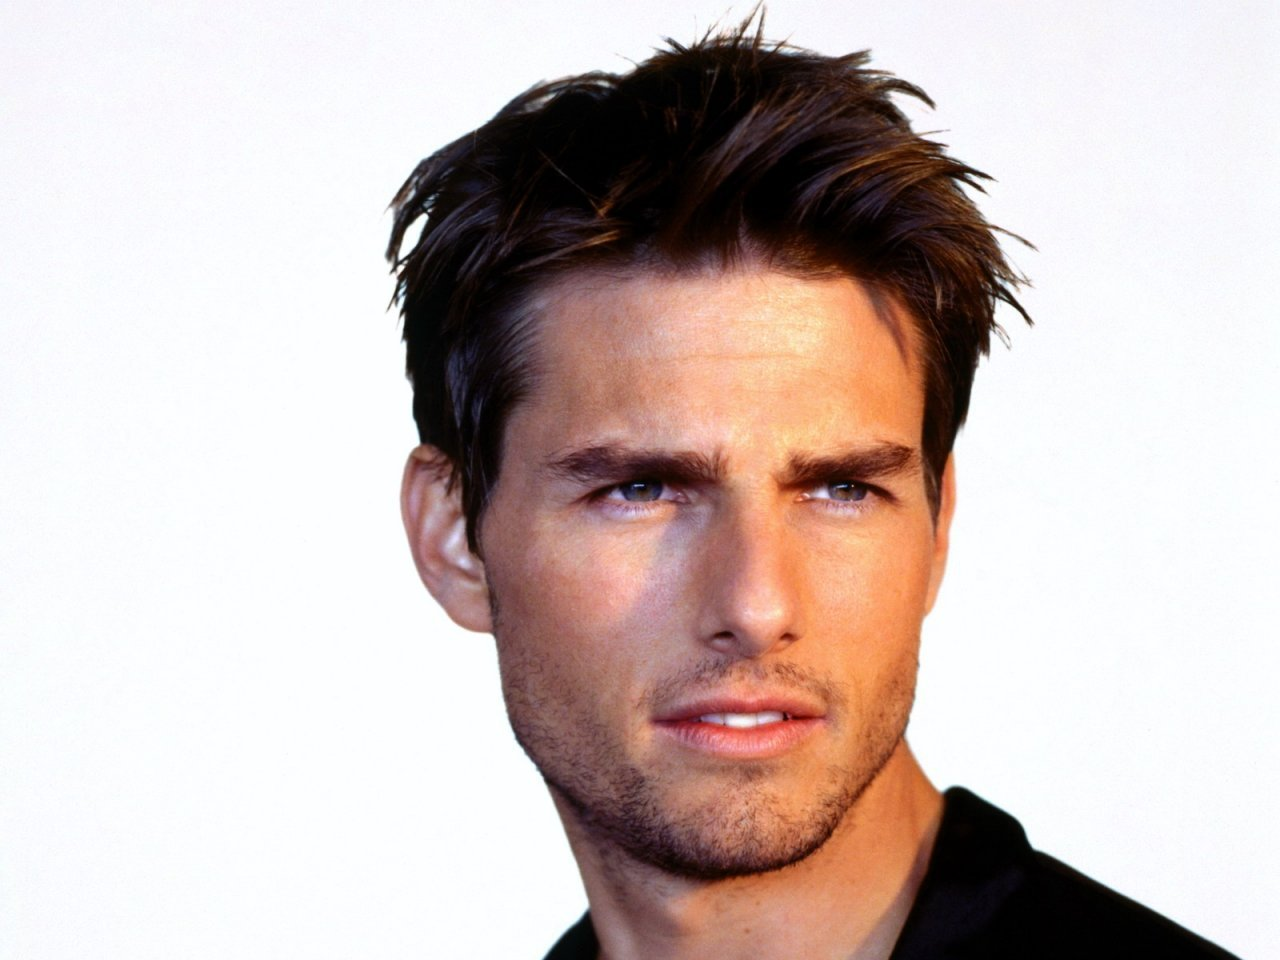 Tom cruise clipart clip free download Tom cruise clipart - ClipartFest clip free download